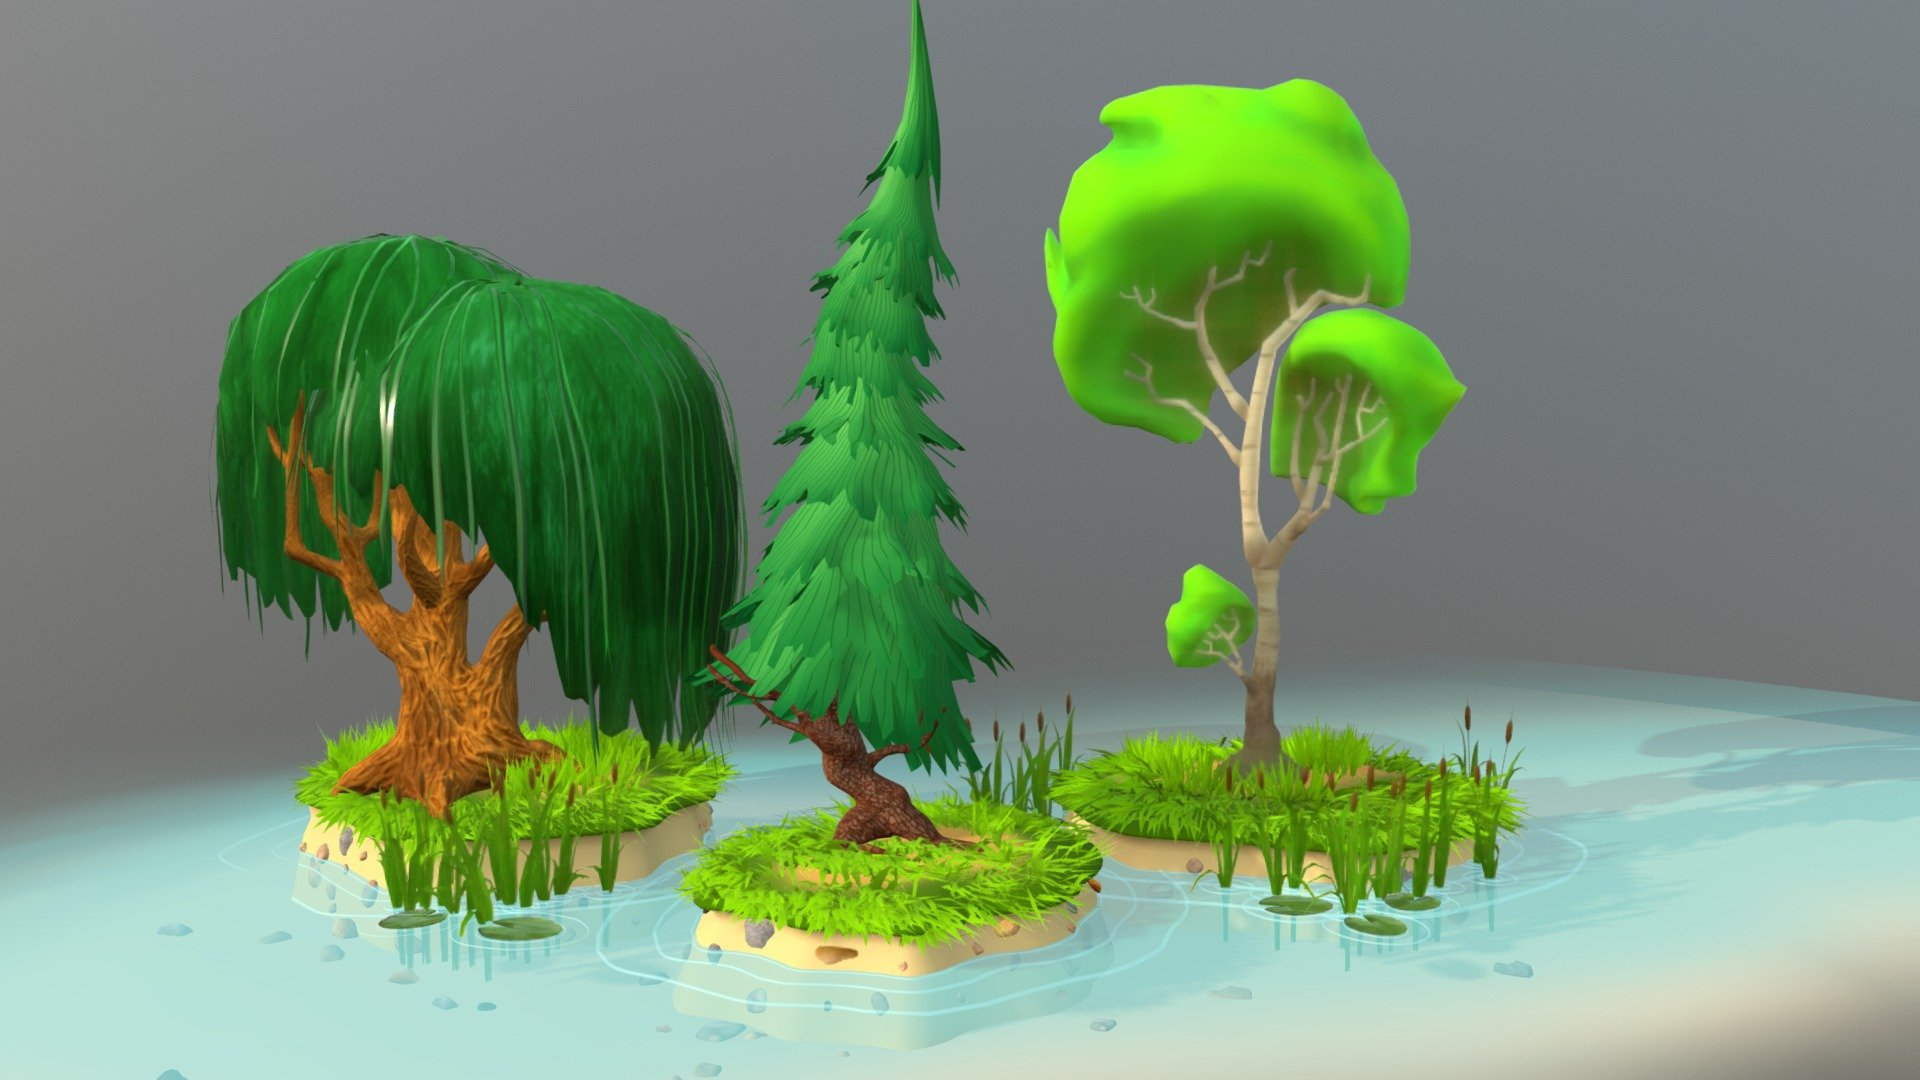 3 Cartoon Tree Buy Royalty Free 3d Model By Sanya Laneev Lansvision2 9414ff9 Sketchfab Store The author of this item is geoimages (no.301699). 3 cartoon tree buy royalty free 3d